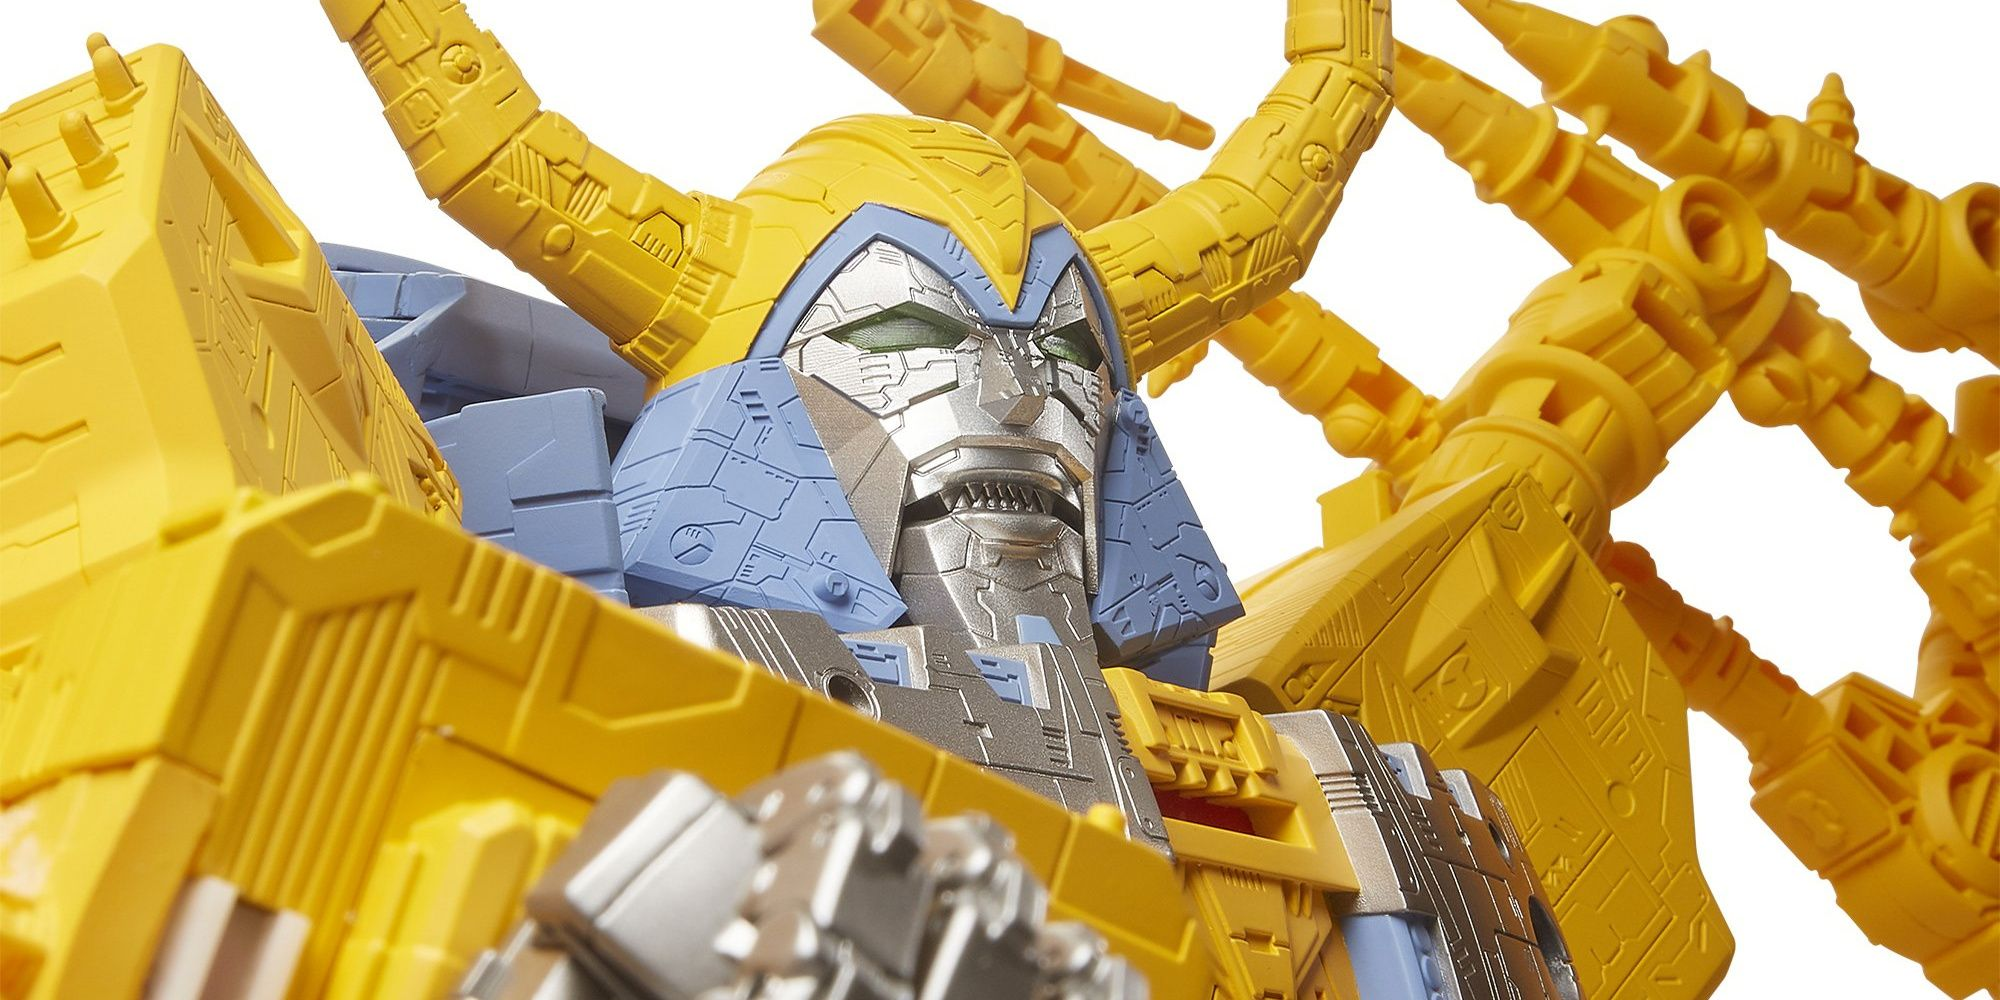 Unicron Rises: Hasbro Crowdfunds Largest Transformer Figure, Ever